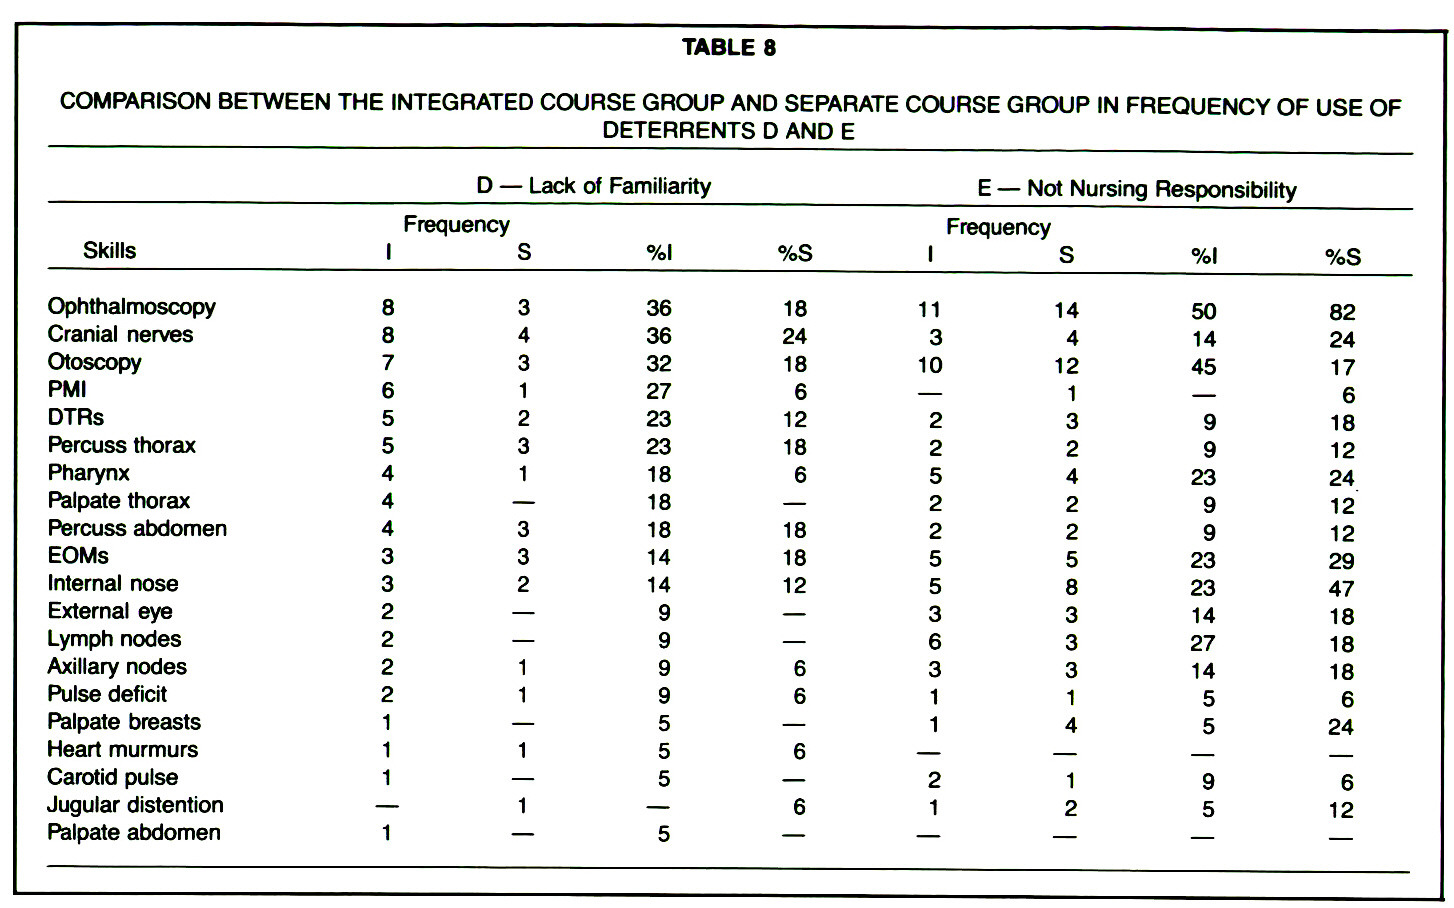 TABLE 8COMPARISON BETWEEN THE INTEGRATED COURSE GROUP AND SEPARATE COURSE GROUP IN FREQUENCY OF USE OF DETERRENTS D AND E